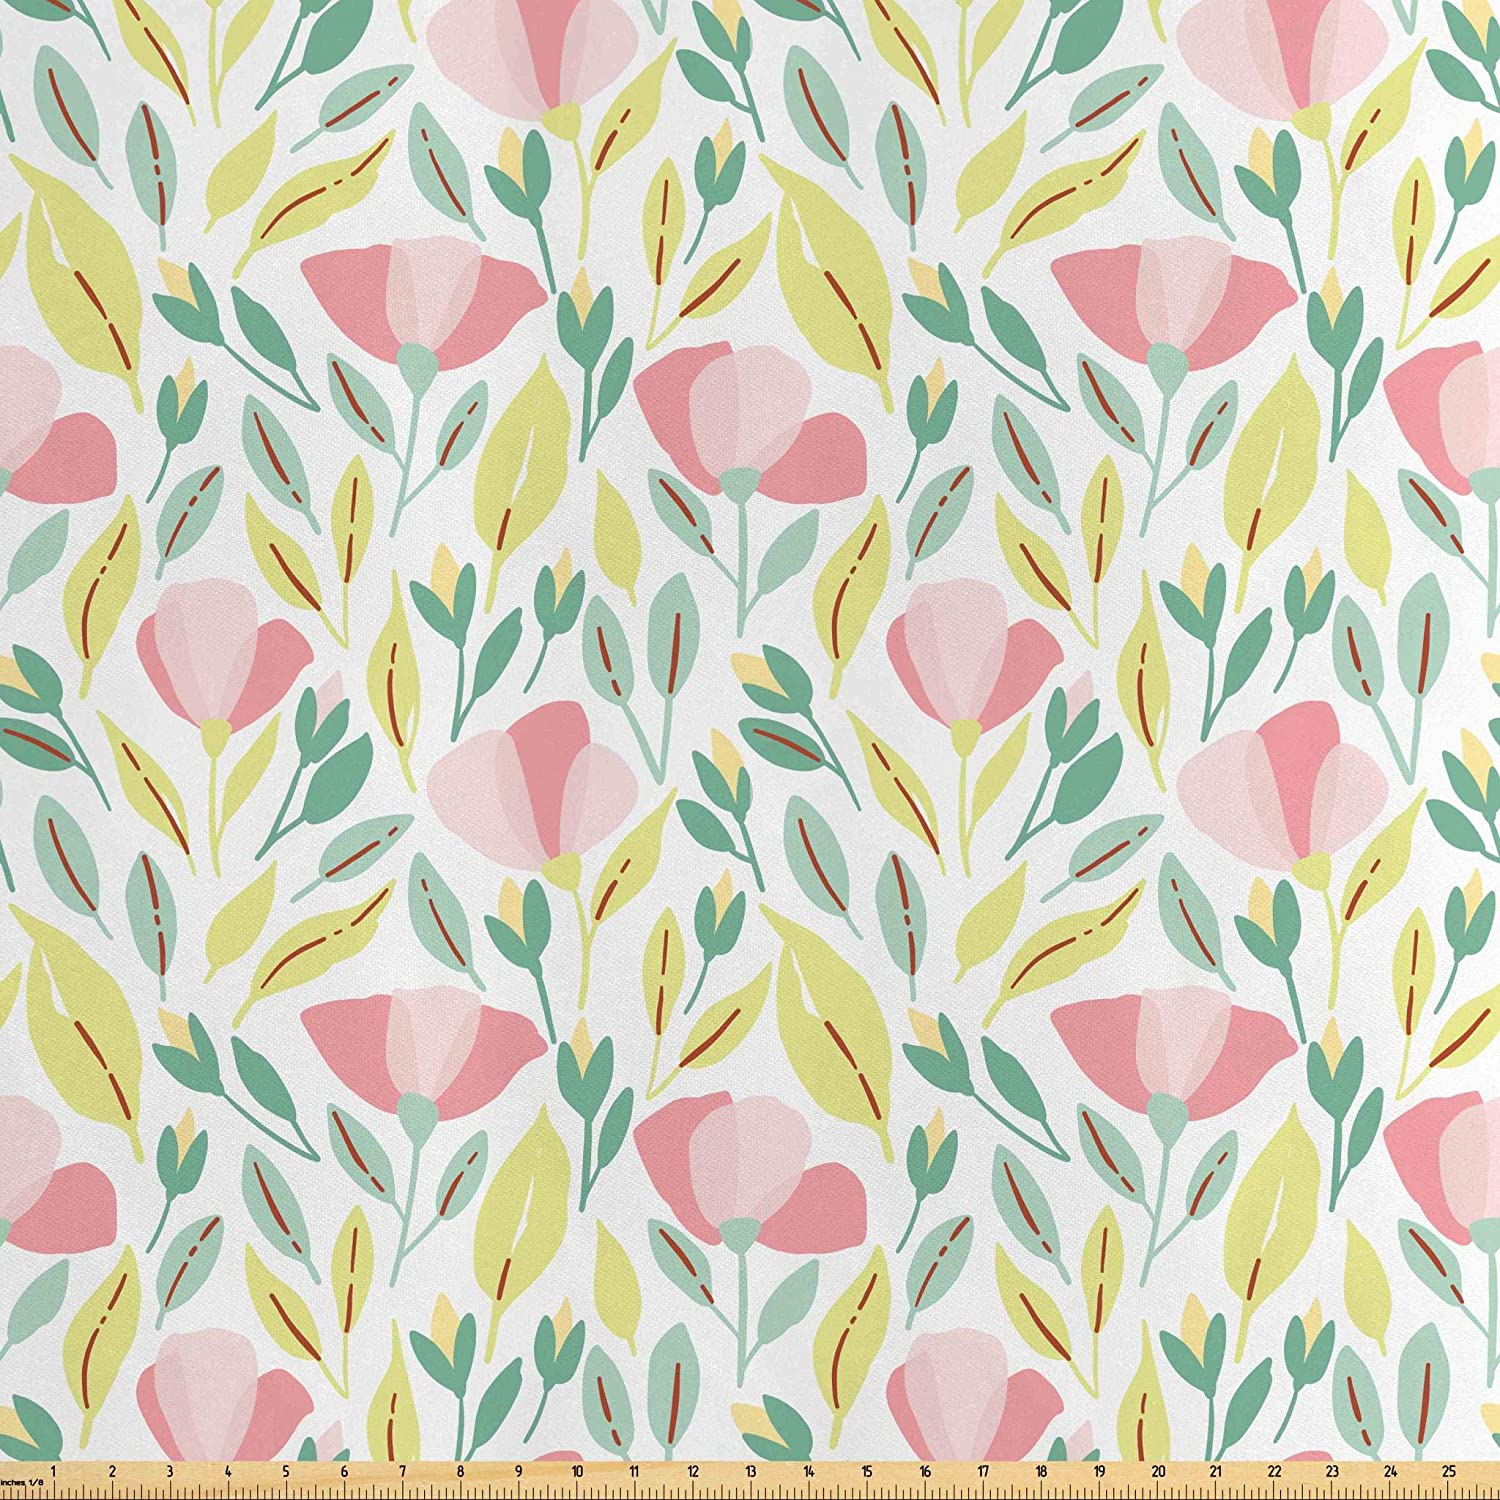 Lunarable Gardening Fabric by The Yard, Abstract Illustration of Wild Flowers Herbs Pink Color Poppy Flowers and Buds, Decorative Satin Fabric for Home Textiles and Crafts, 1 Yard, Multicolor